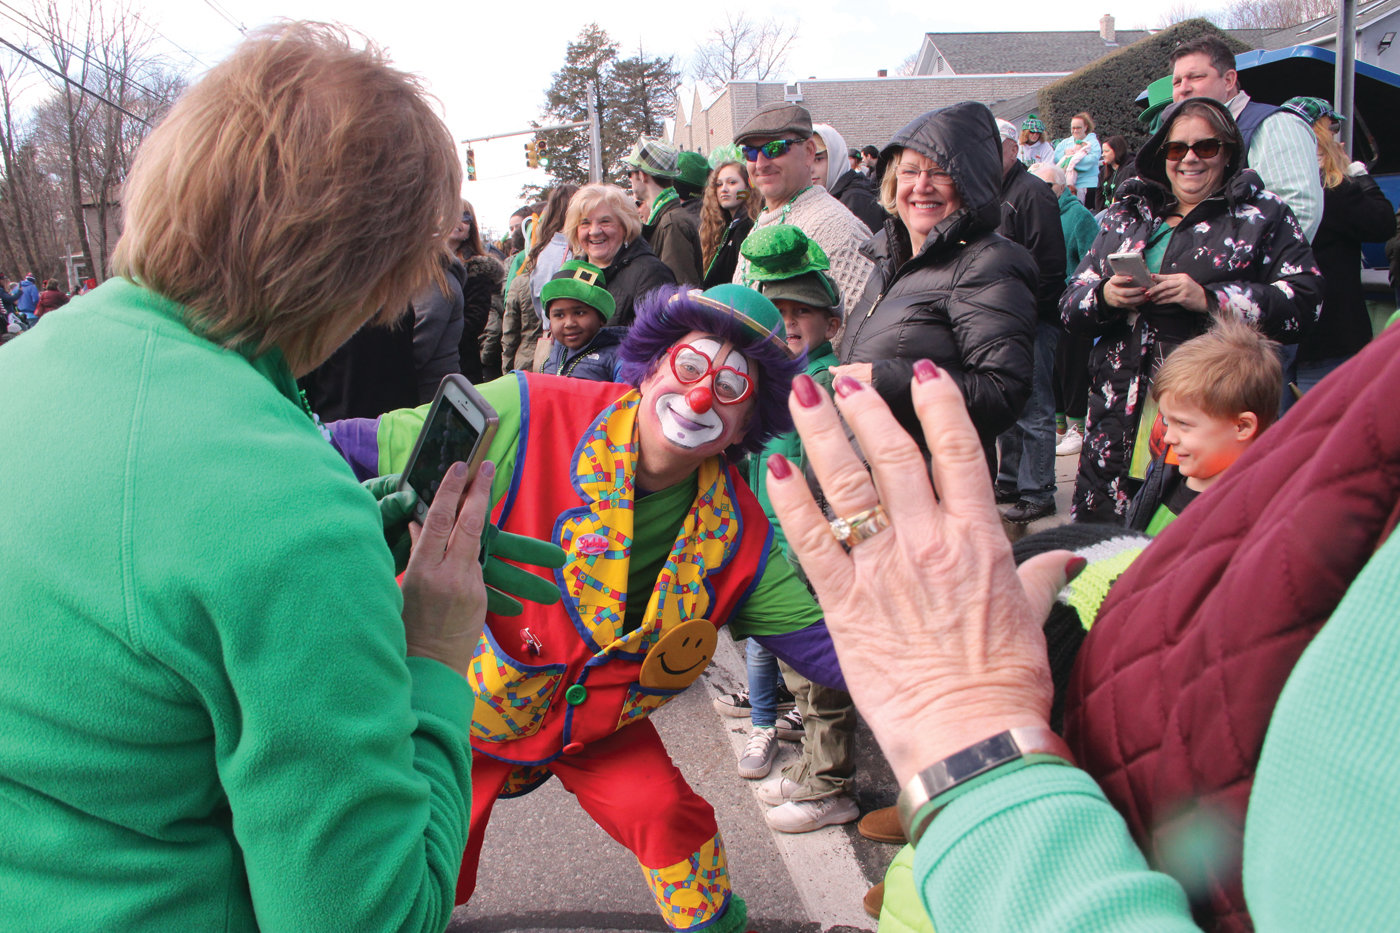 FACE IT, YOU WERE IRISH ON SUNDAY: With ideal conditions, the 60th edition of the West Warwick St. Patrick's Day parade was a festive occasion with the line of march filled with spectators, many of them dressed in more vivid greens than those marching. But few could match the festive colors, and for that matter the smile, of this Shriners clown, who willingly posed for pictures.